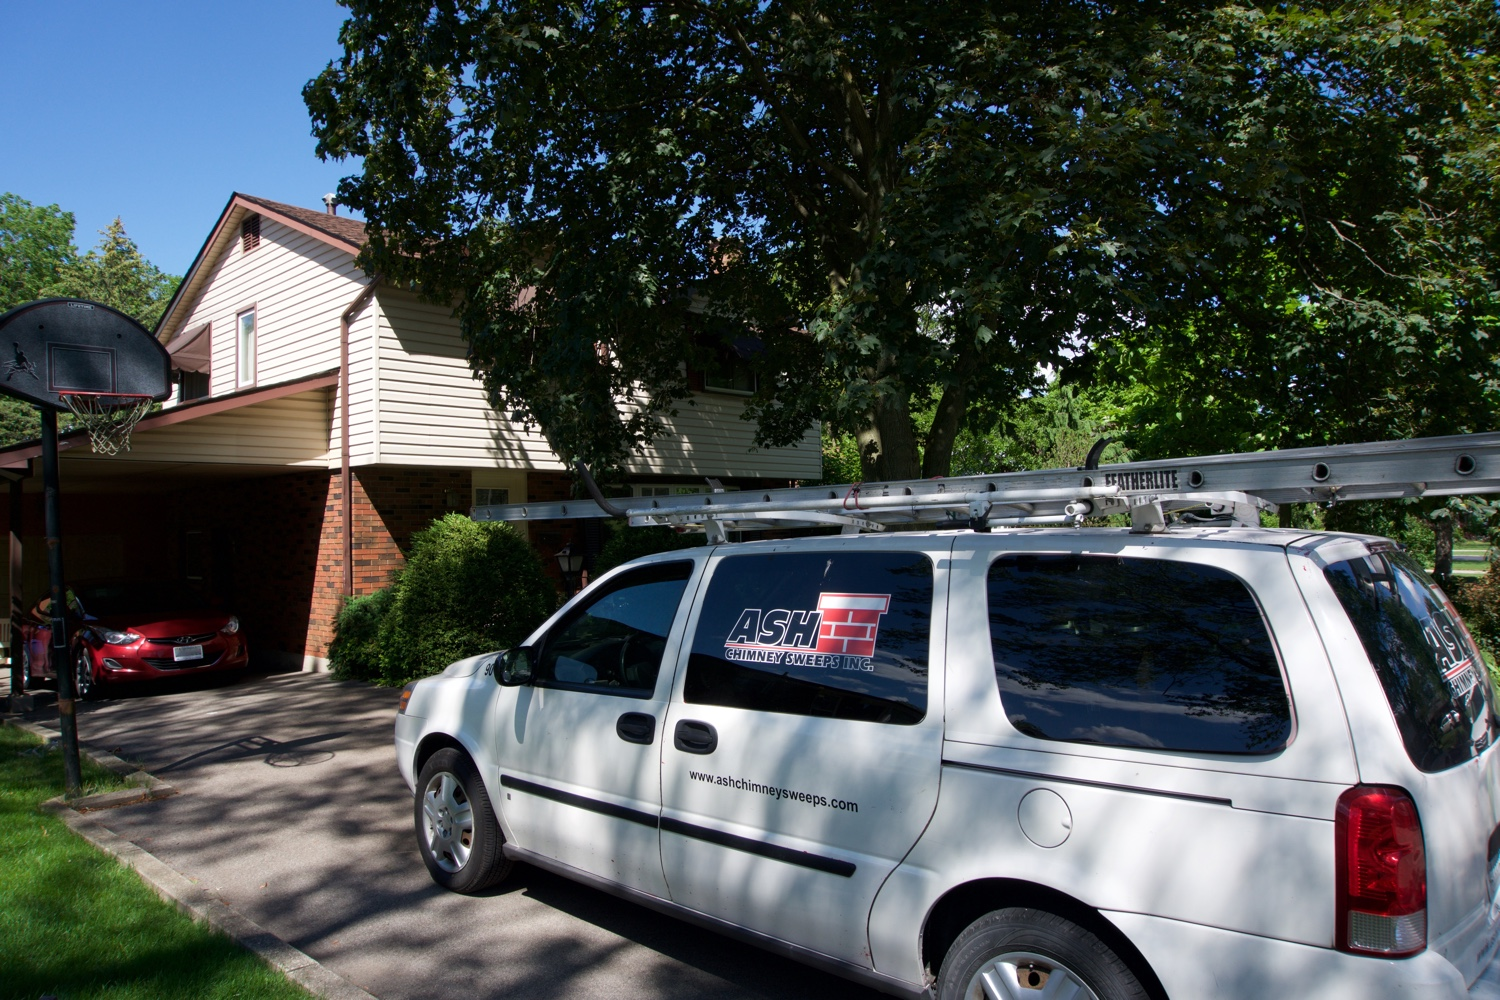 Chimney cleanings, chimney covers, WETT inspections, animal and blockage removals.